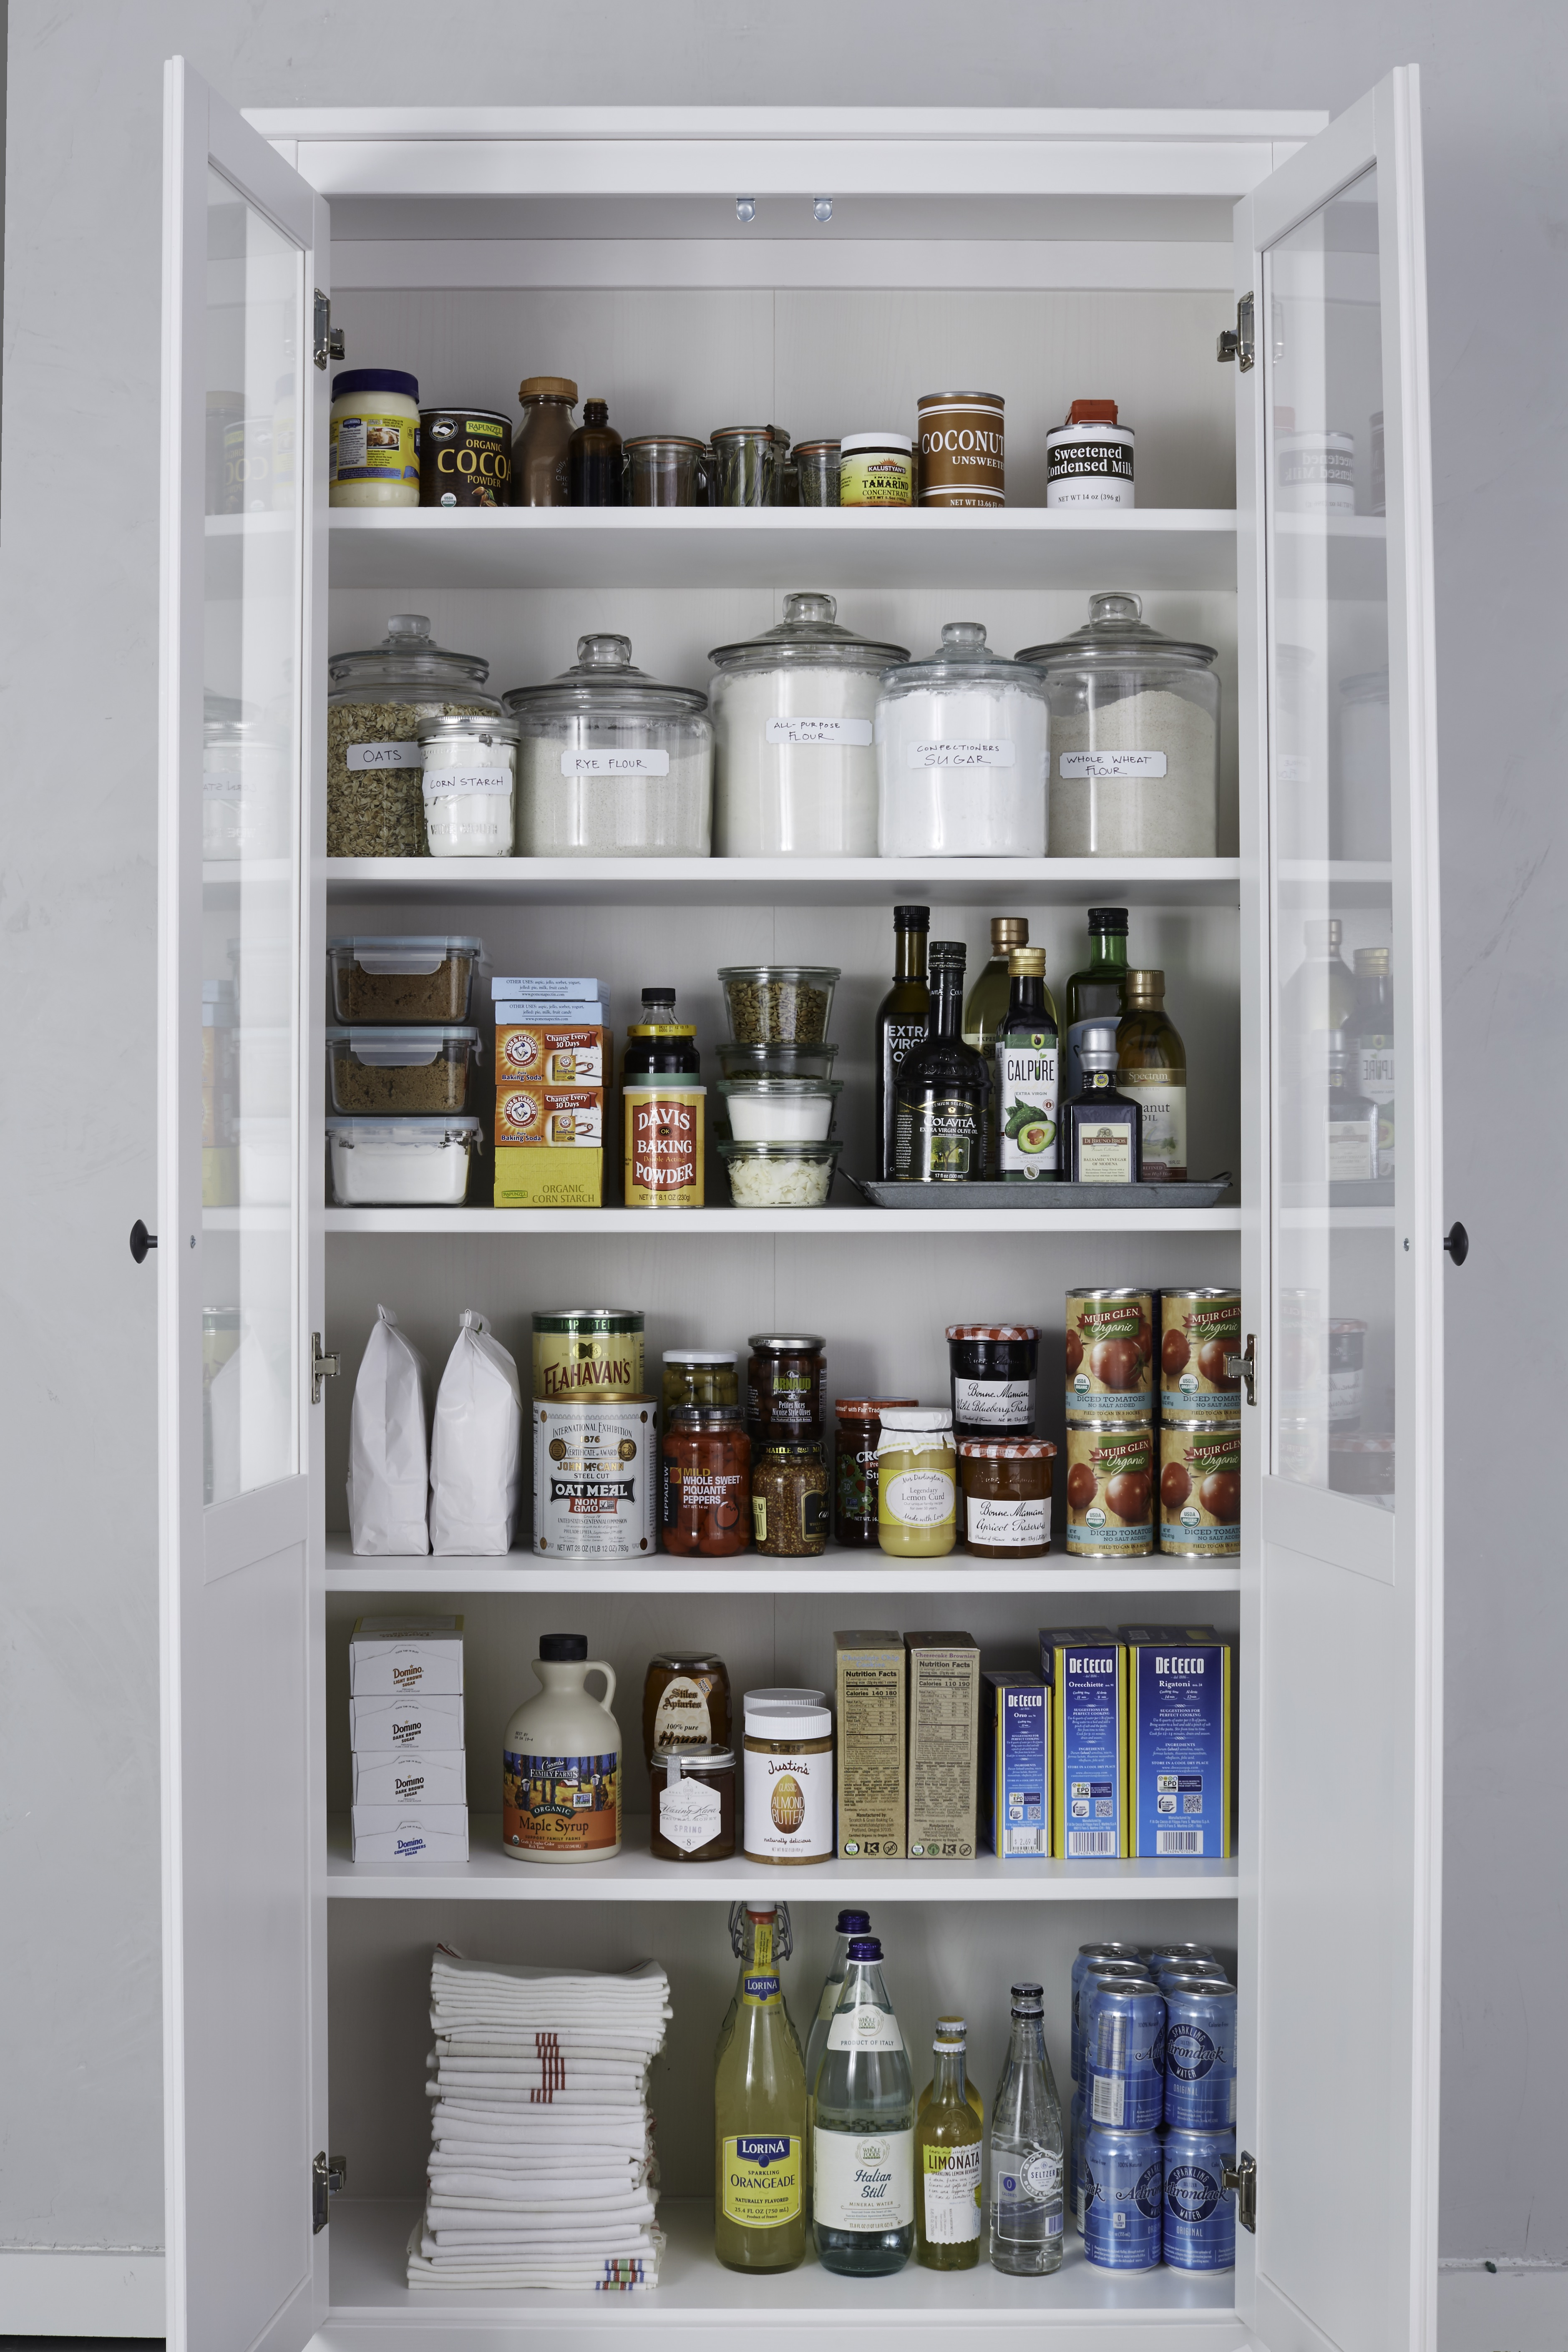 pantry-organized-open-2-0617-6378406